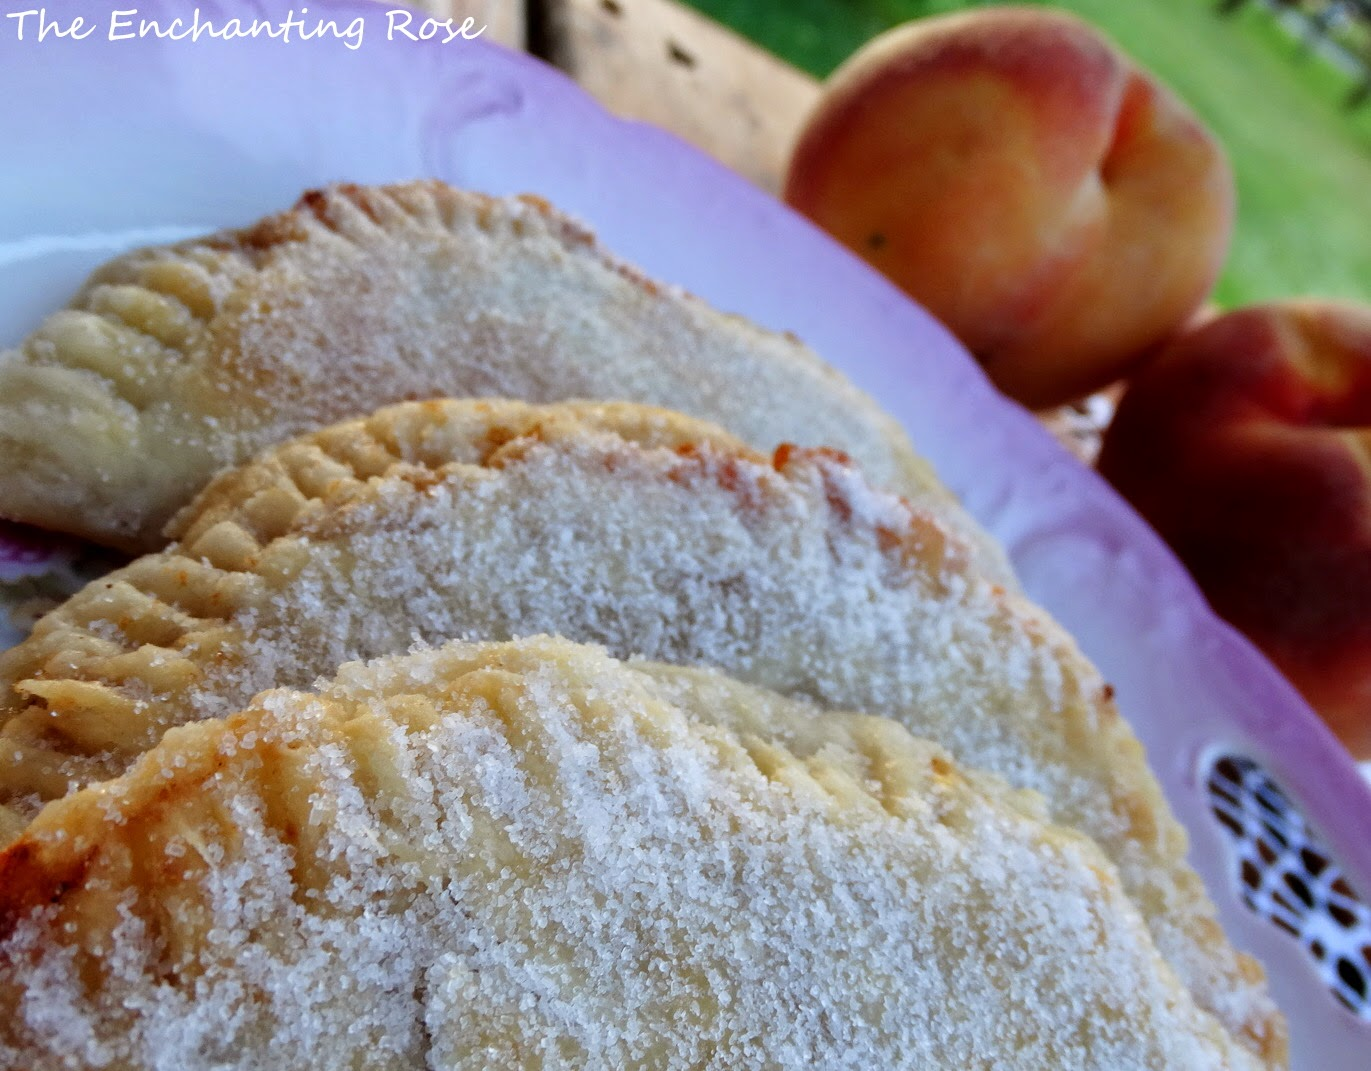 Enjoy the sweet taste of peaches in these delicious fried pies.